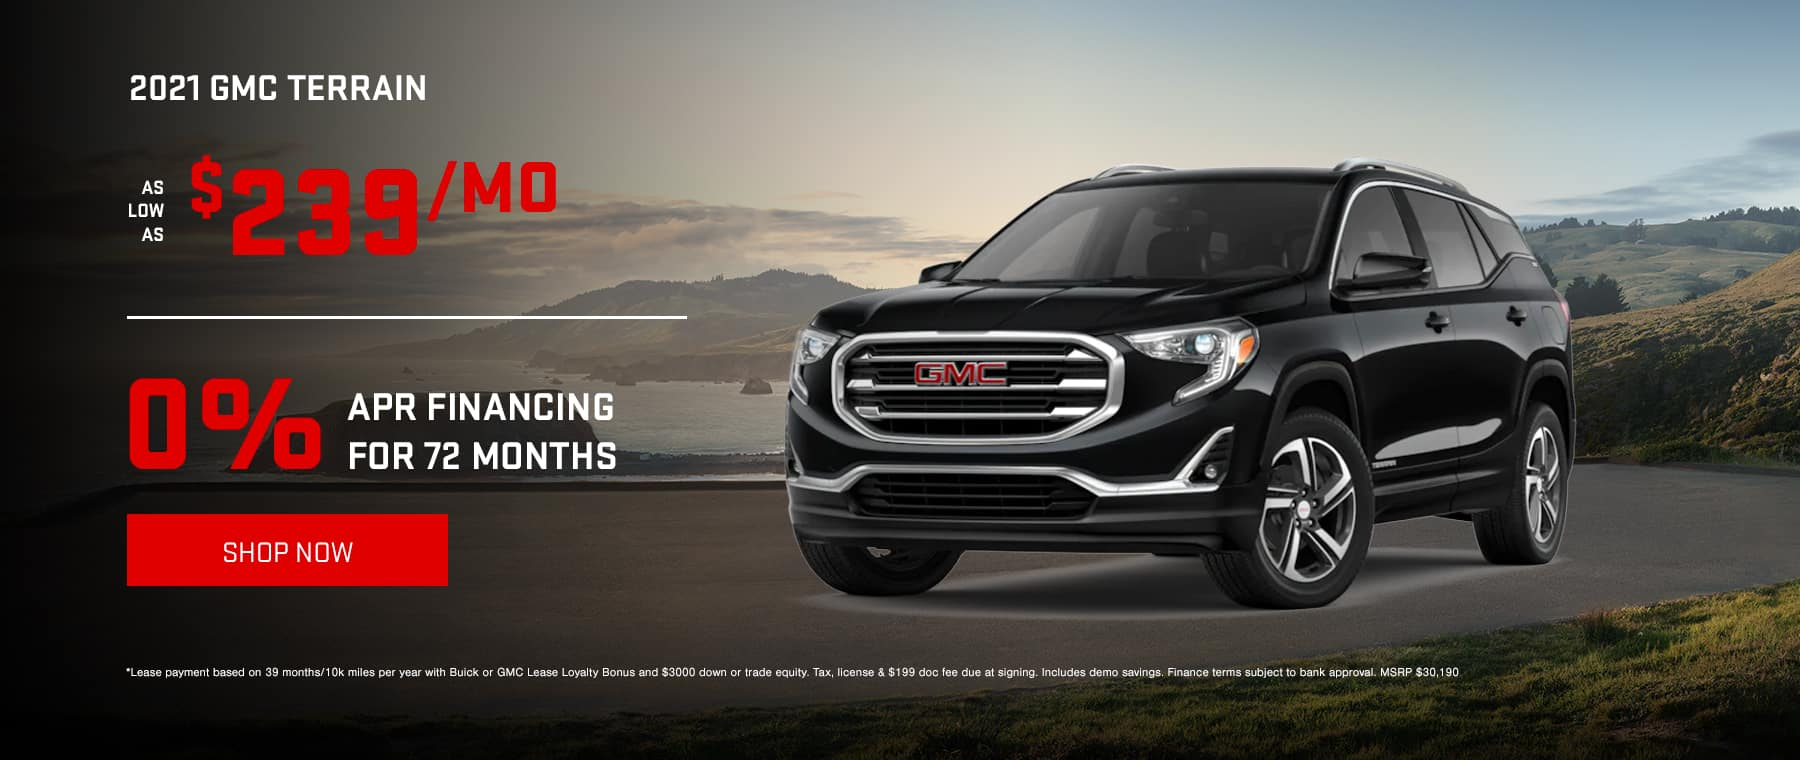 2021 GMC Terrain - As low as $239/mo OR 0% Financing for 72 months